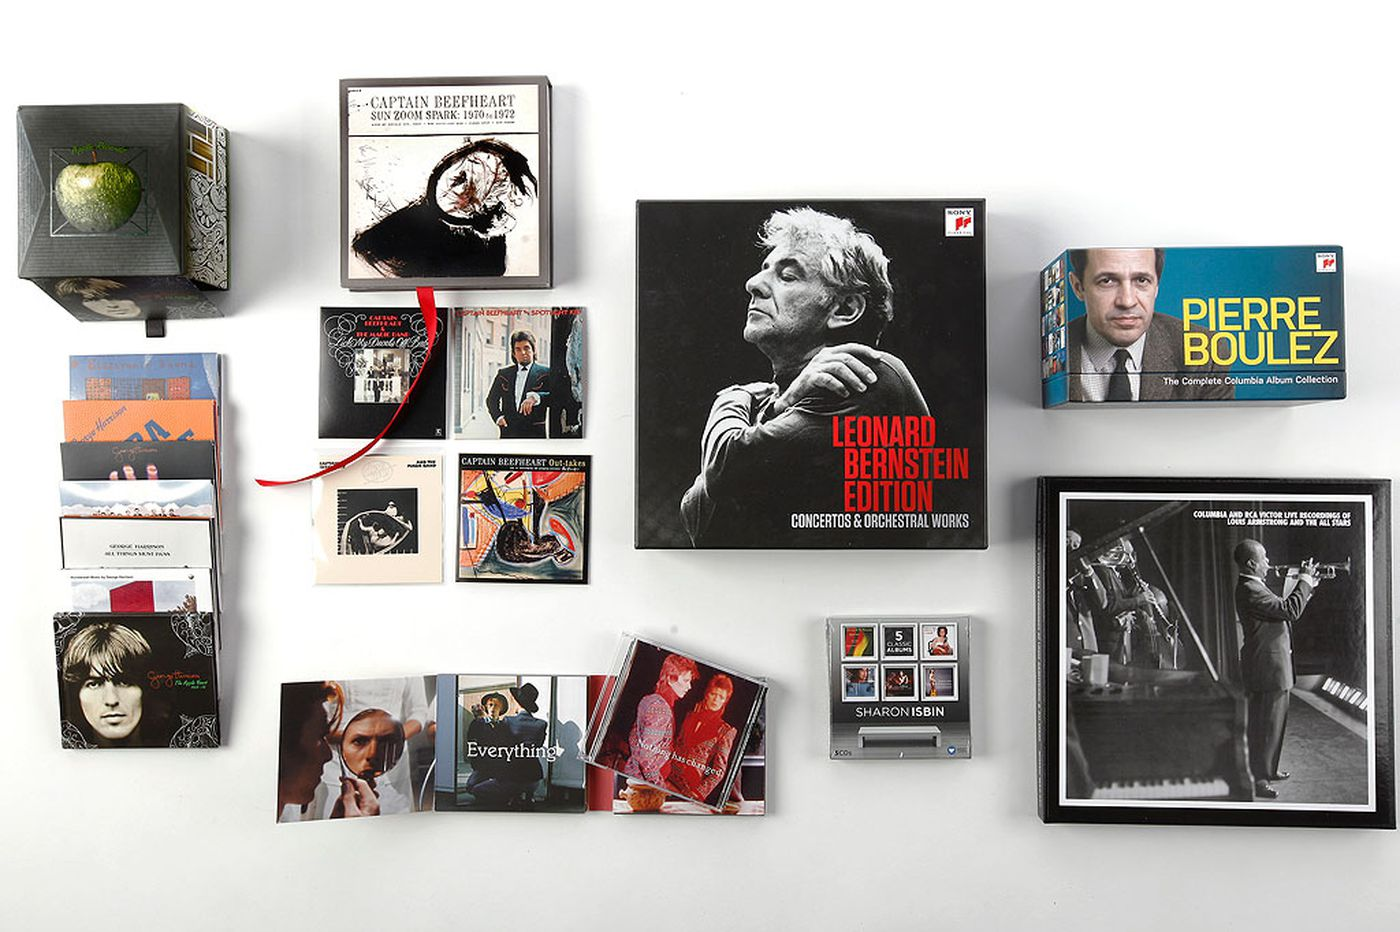 Music boxed sets for the perfect holiday gift